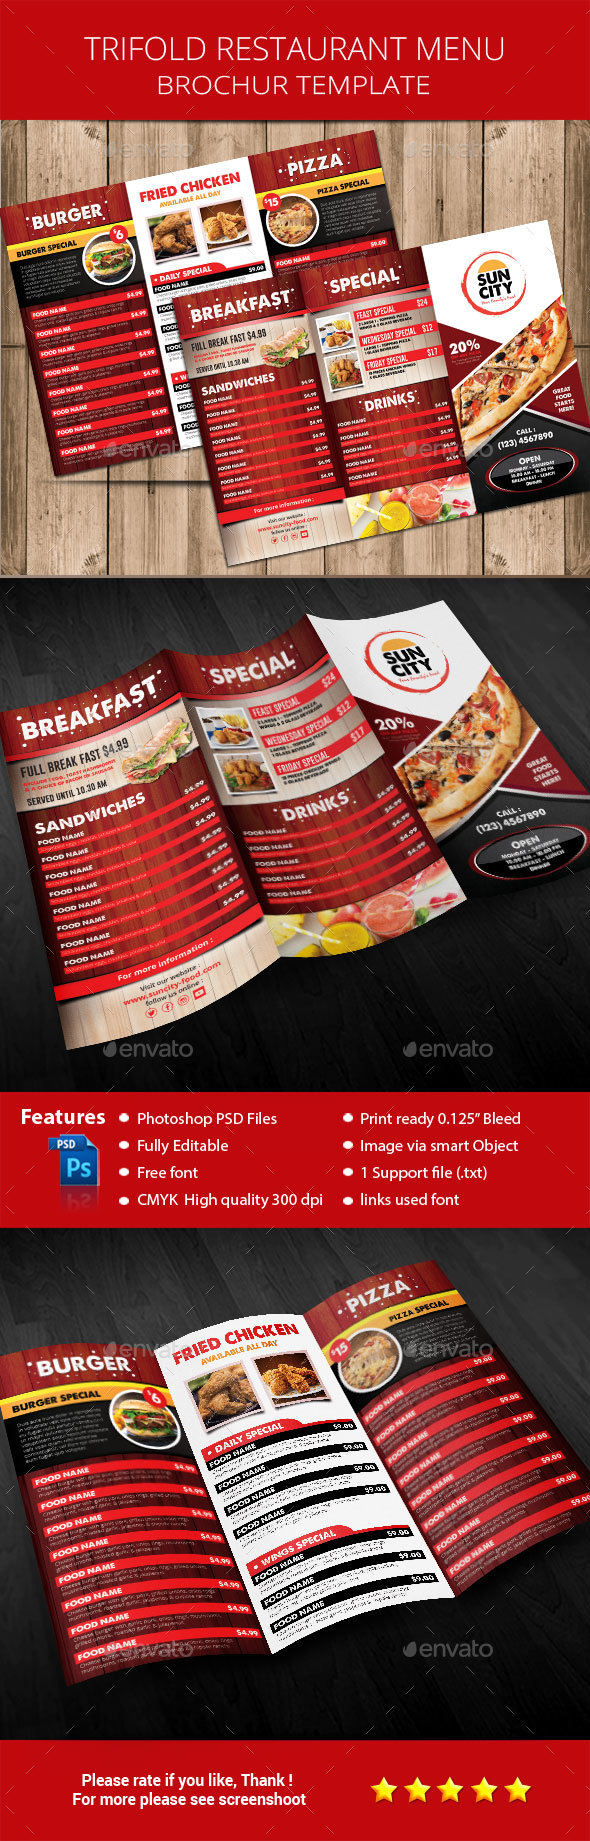 Rustic Restaurant Menu Brochure - Restaurant Flyers